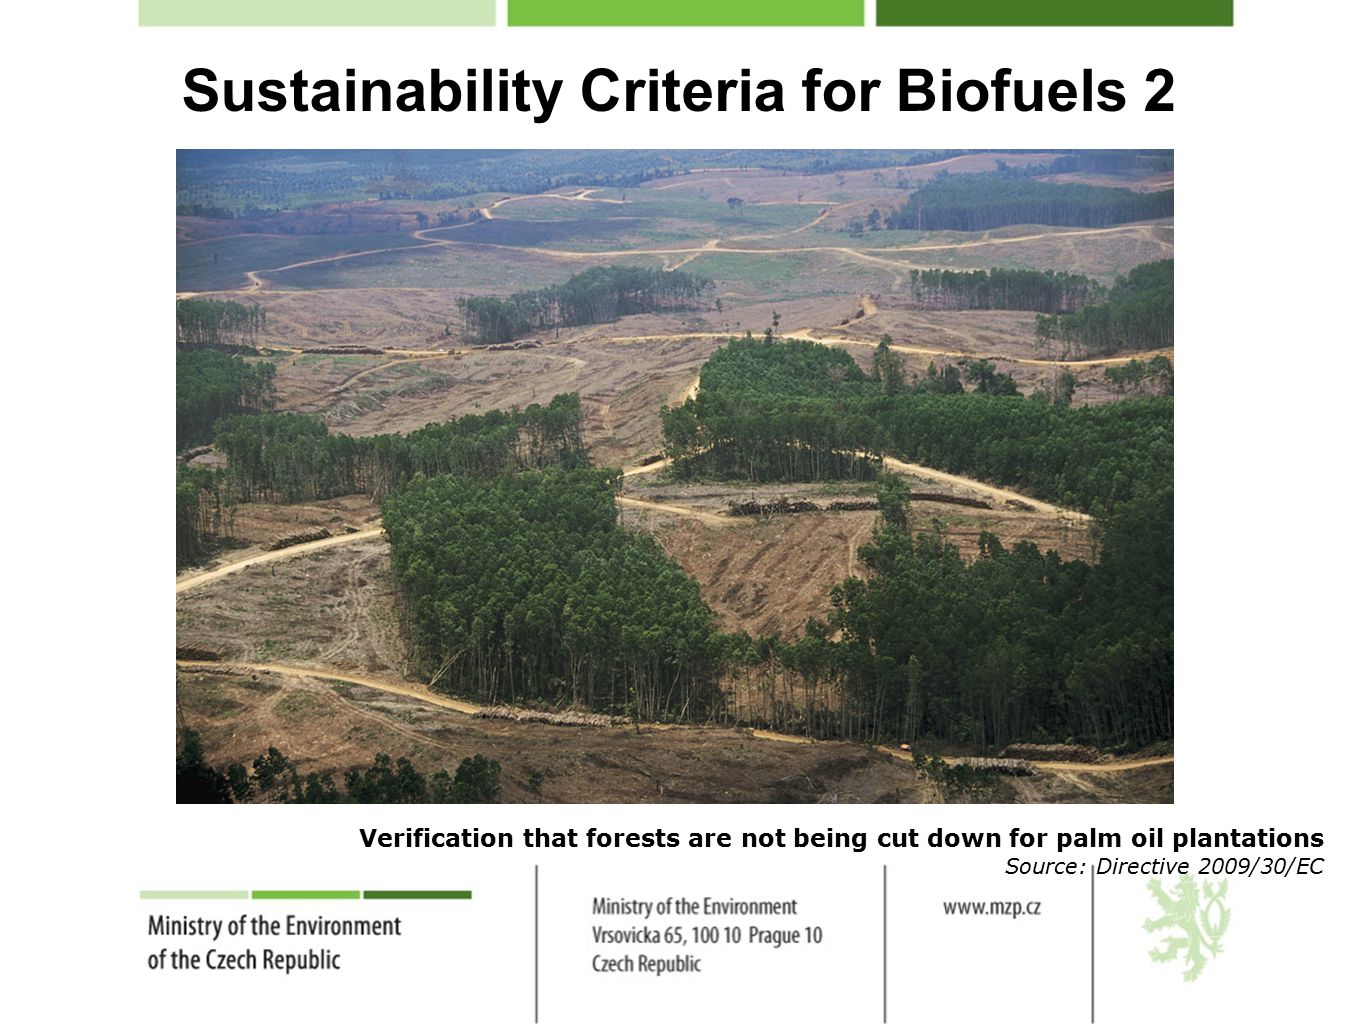 Sustainability Criteria for Biofuels 2 Verification that forests are not being cut down for palm oil plantations Source: Directive 2009/30/EC